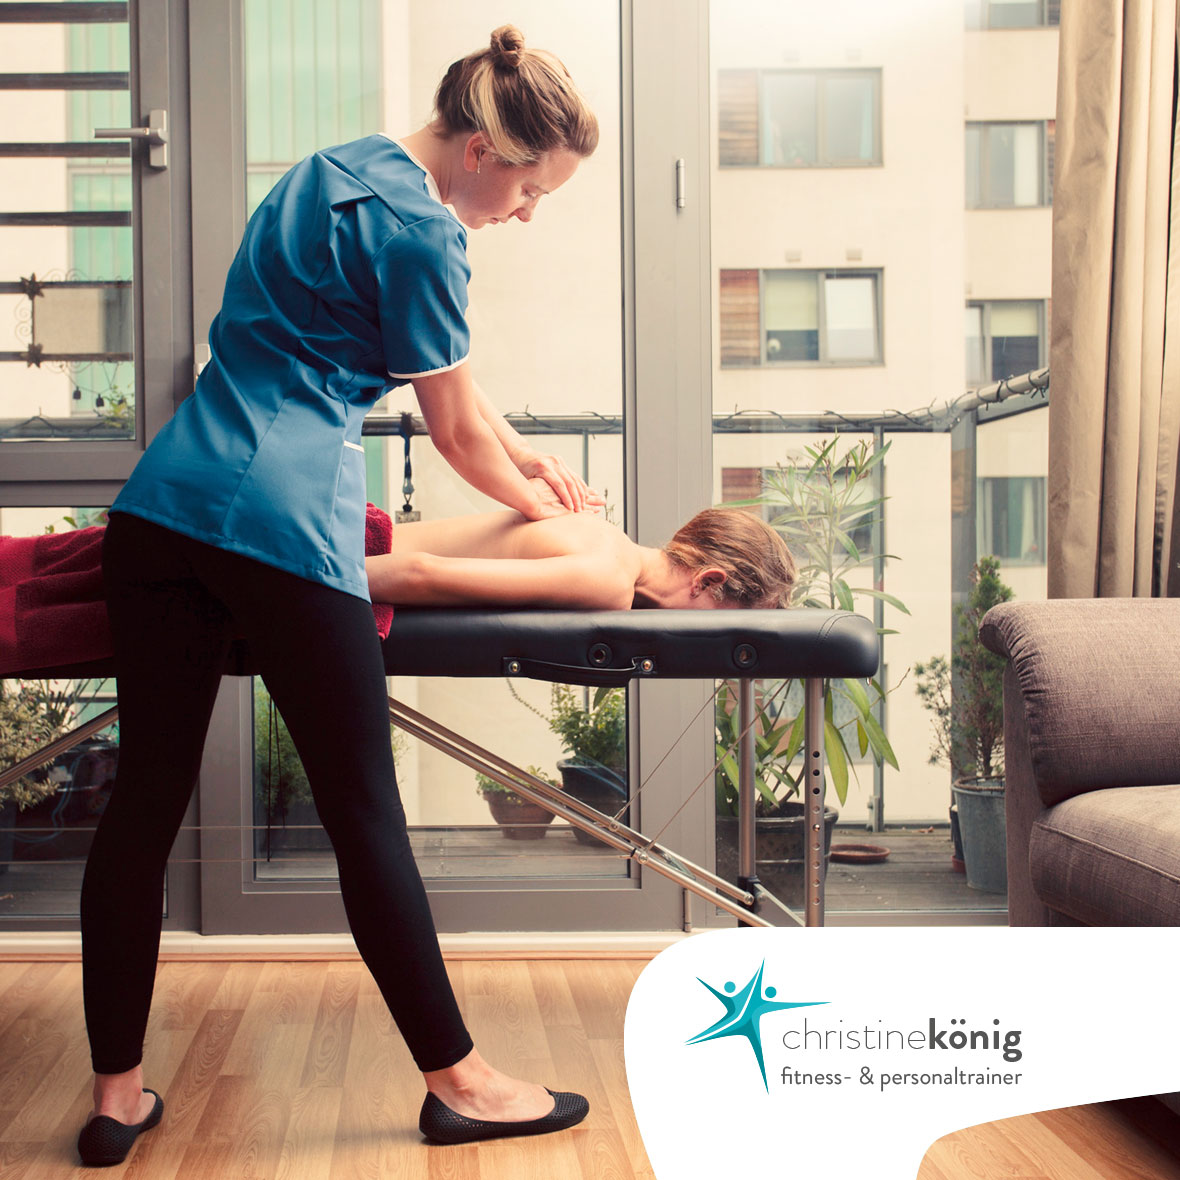 Christine König - Personal Trainer, Mobile Massage - Slider